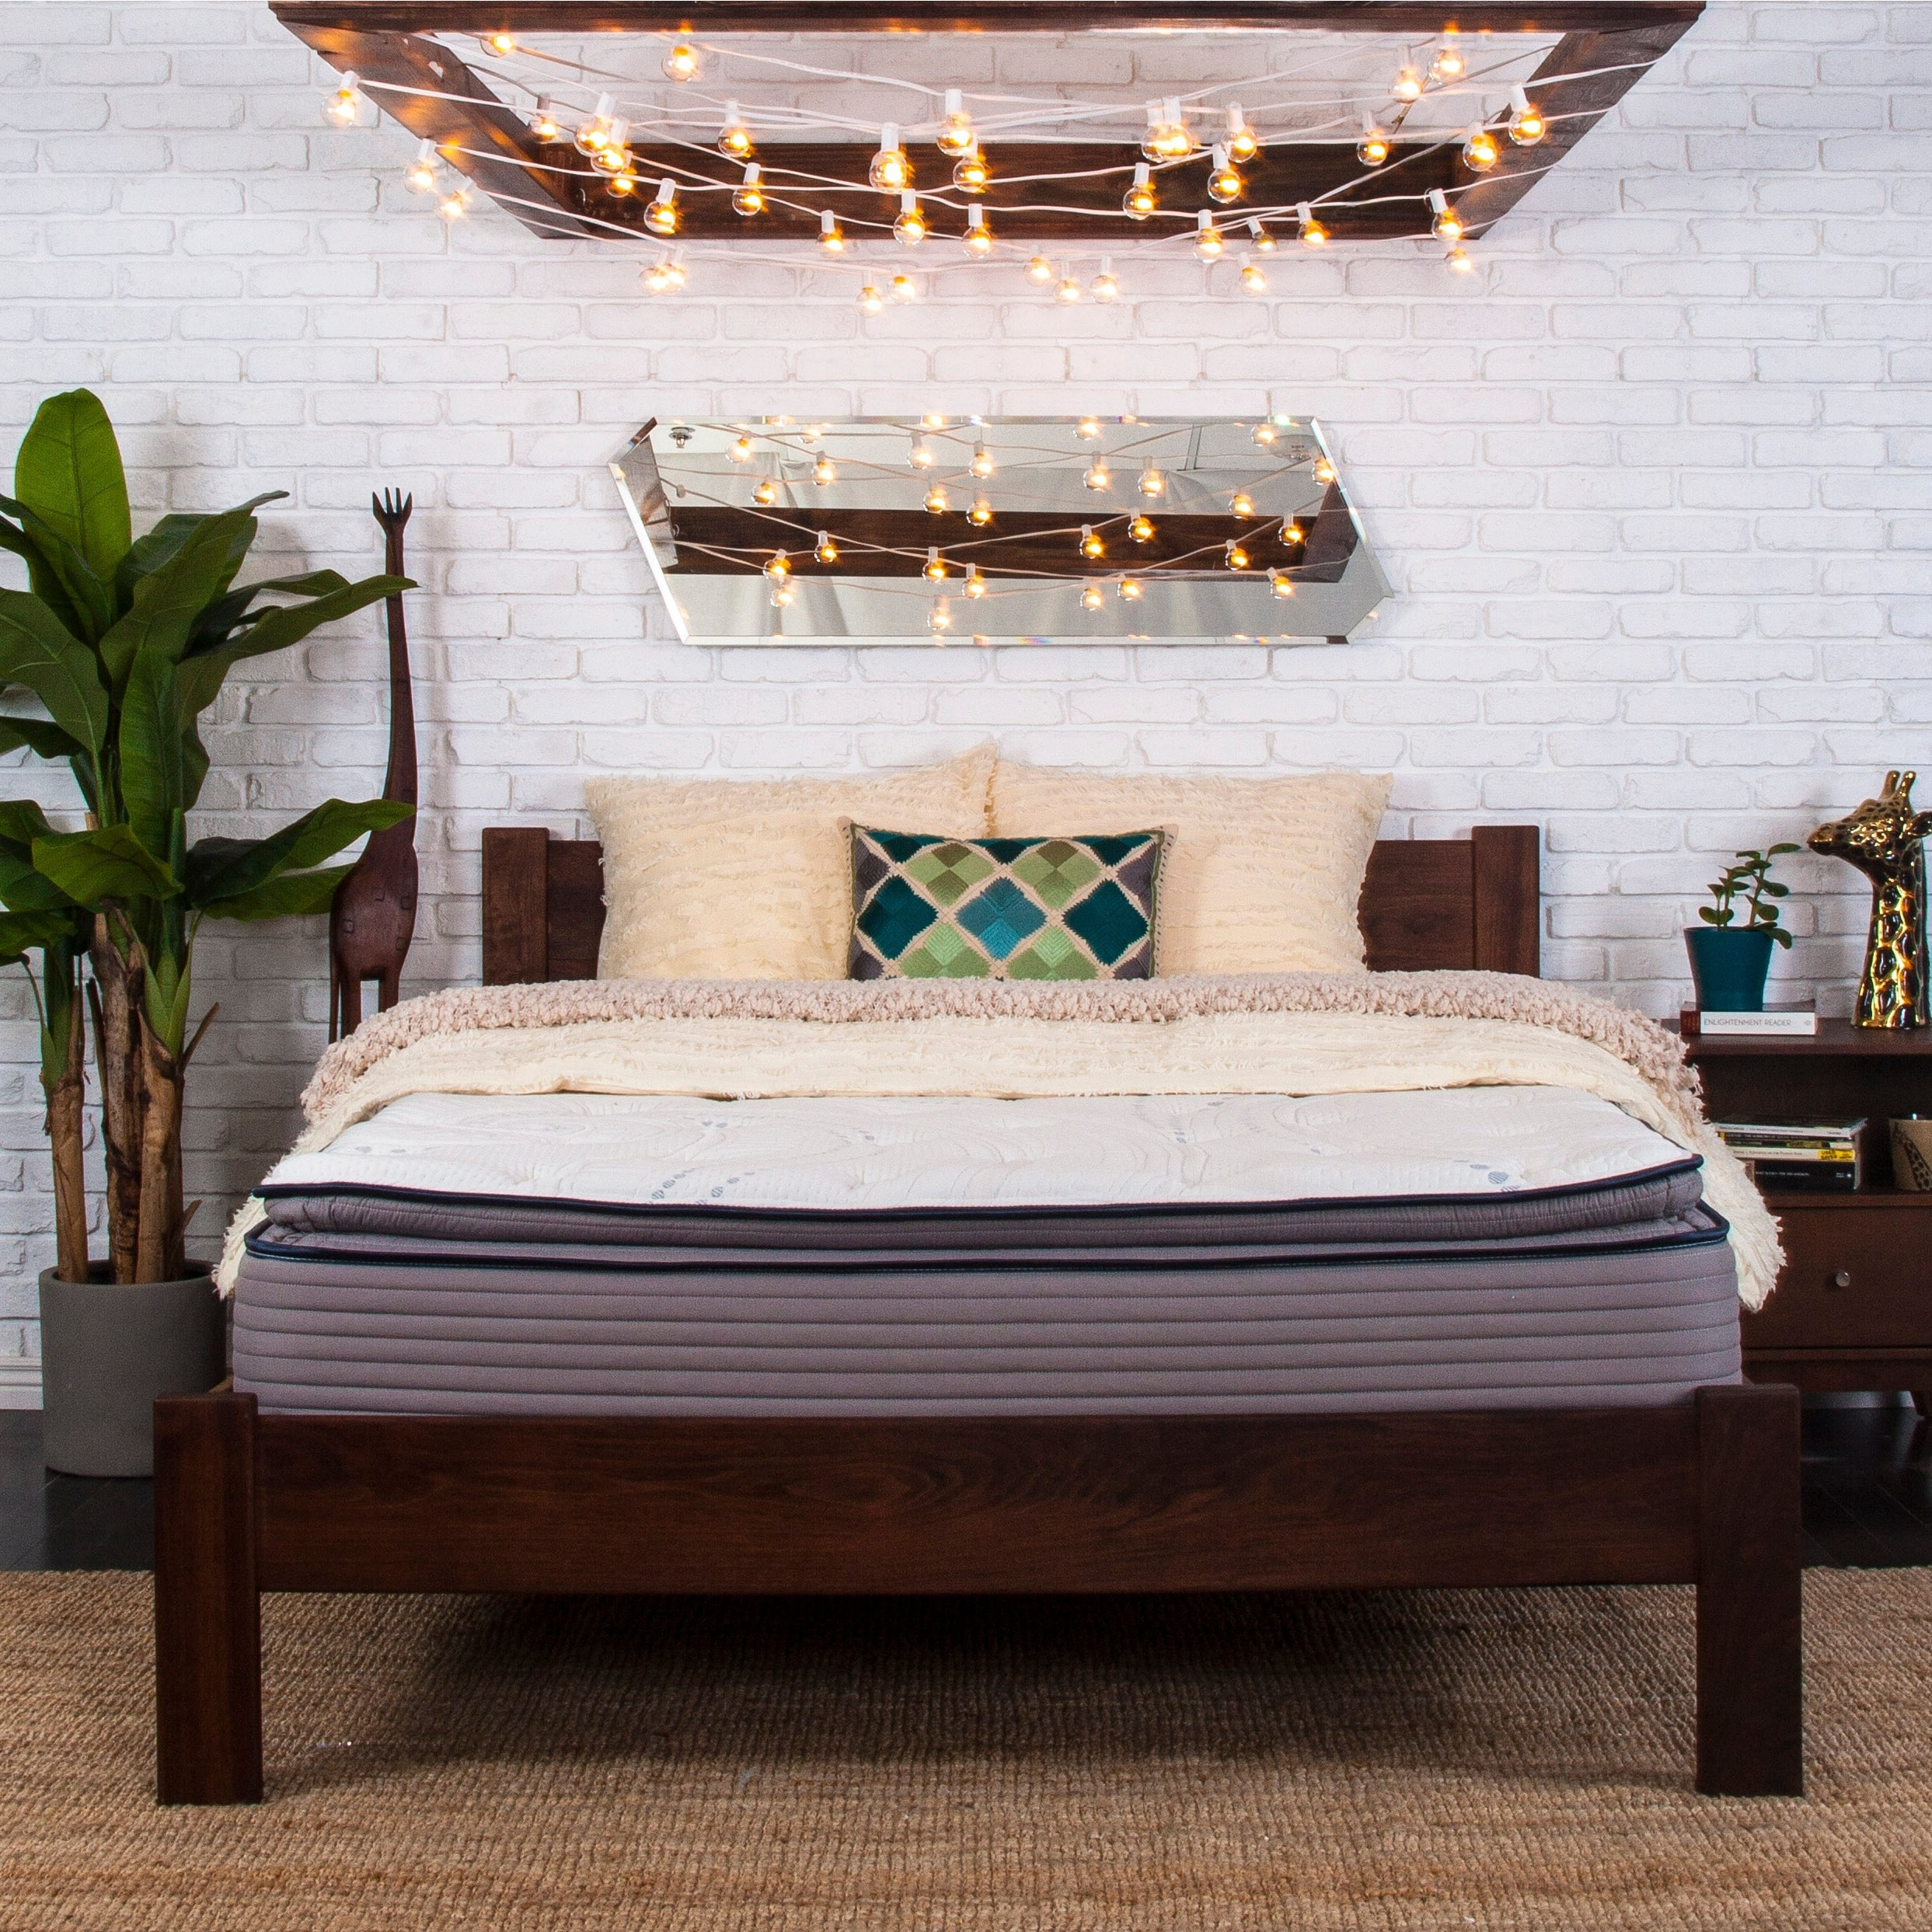 extravagant elite adjustable foundation serta mattress product today with set king pivot overstock top shipping home pillow pillowtop garden size free